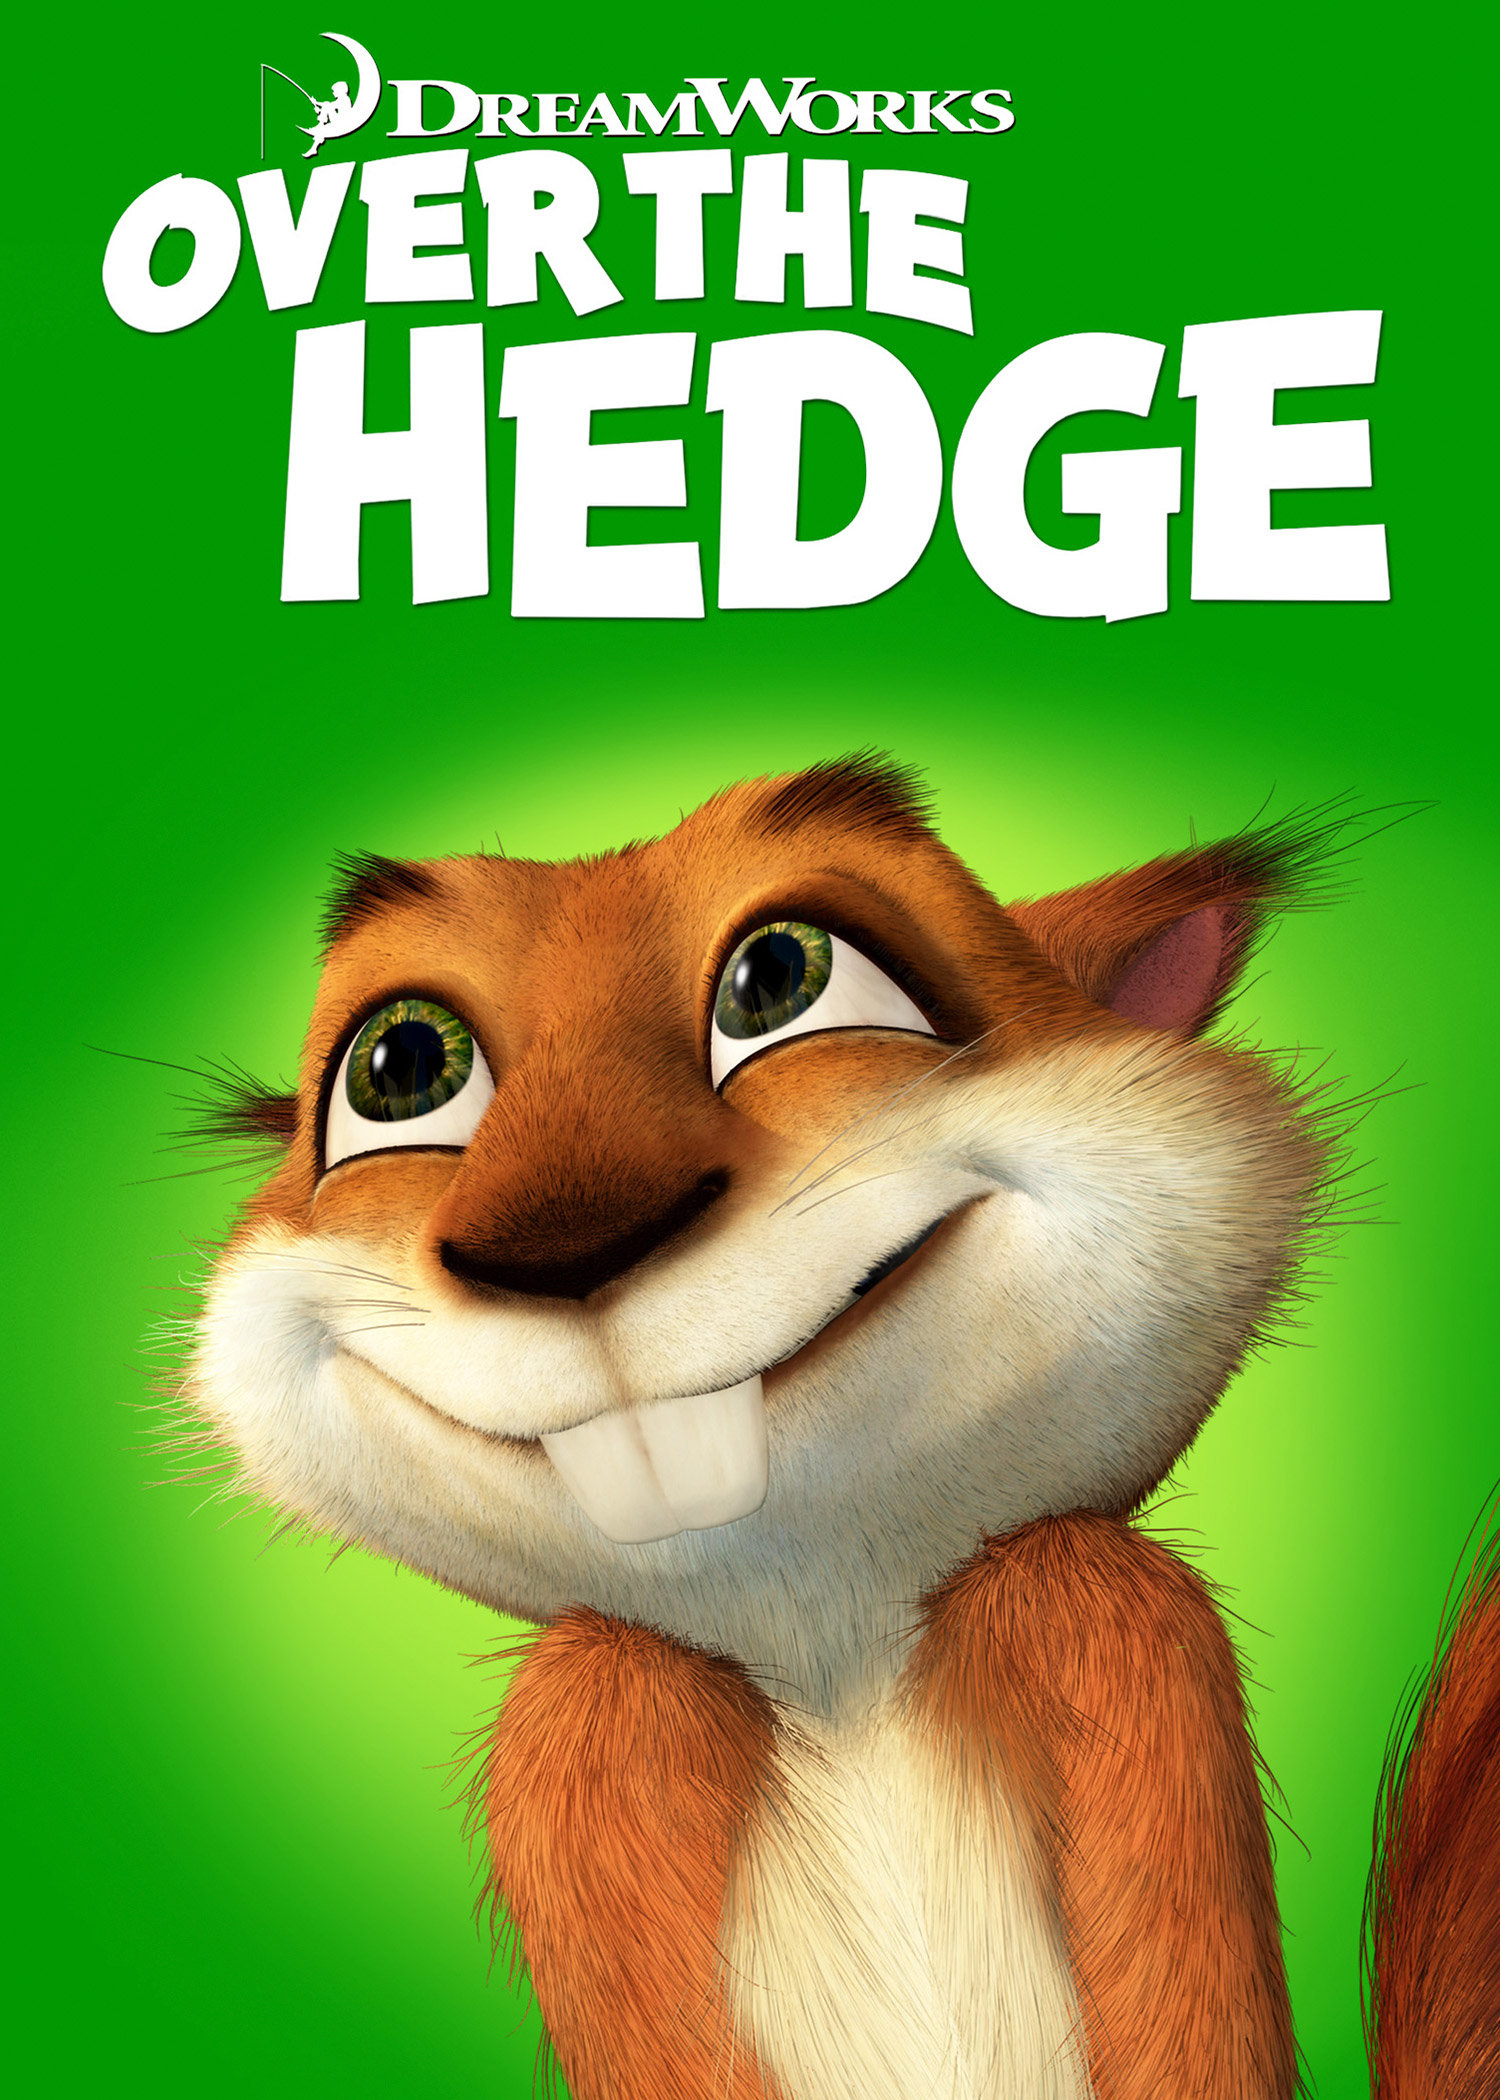 It's available to watch on TV, online, tablets, phone. When Verne (Garry Shandling) and fellow woodland friends awake from winter's hibernation, they find they have some new neighbors: humans, and RJ (Bruce Willis), an opportunistic raccoon who shows the others how to .